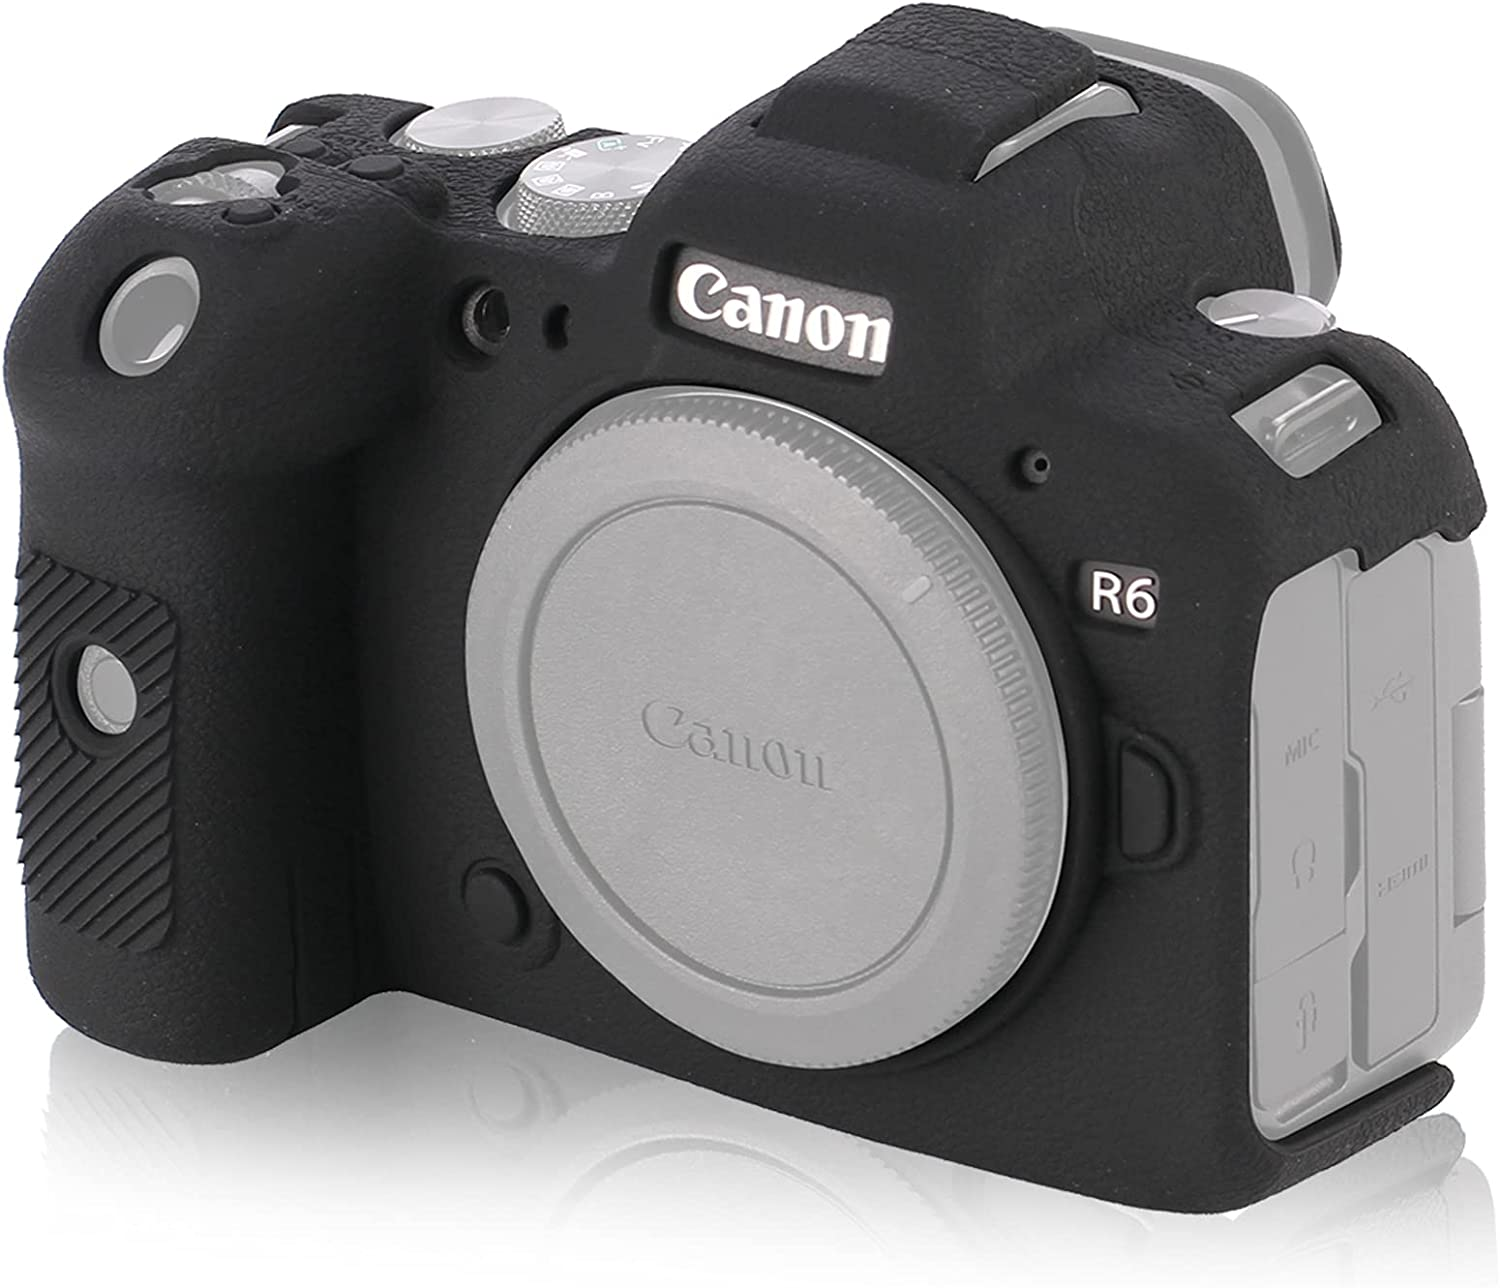 STSEETOP Canon R6 Case Silicone Safety and Limited time sale trust Cover Rubber Camera C Soft